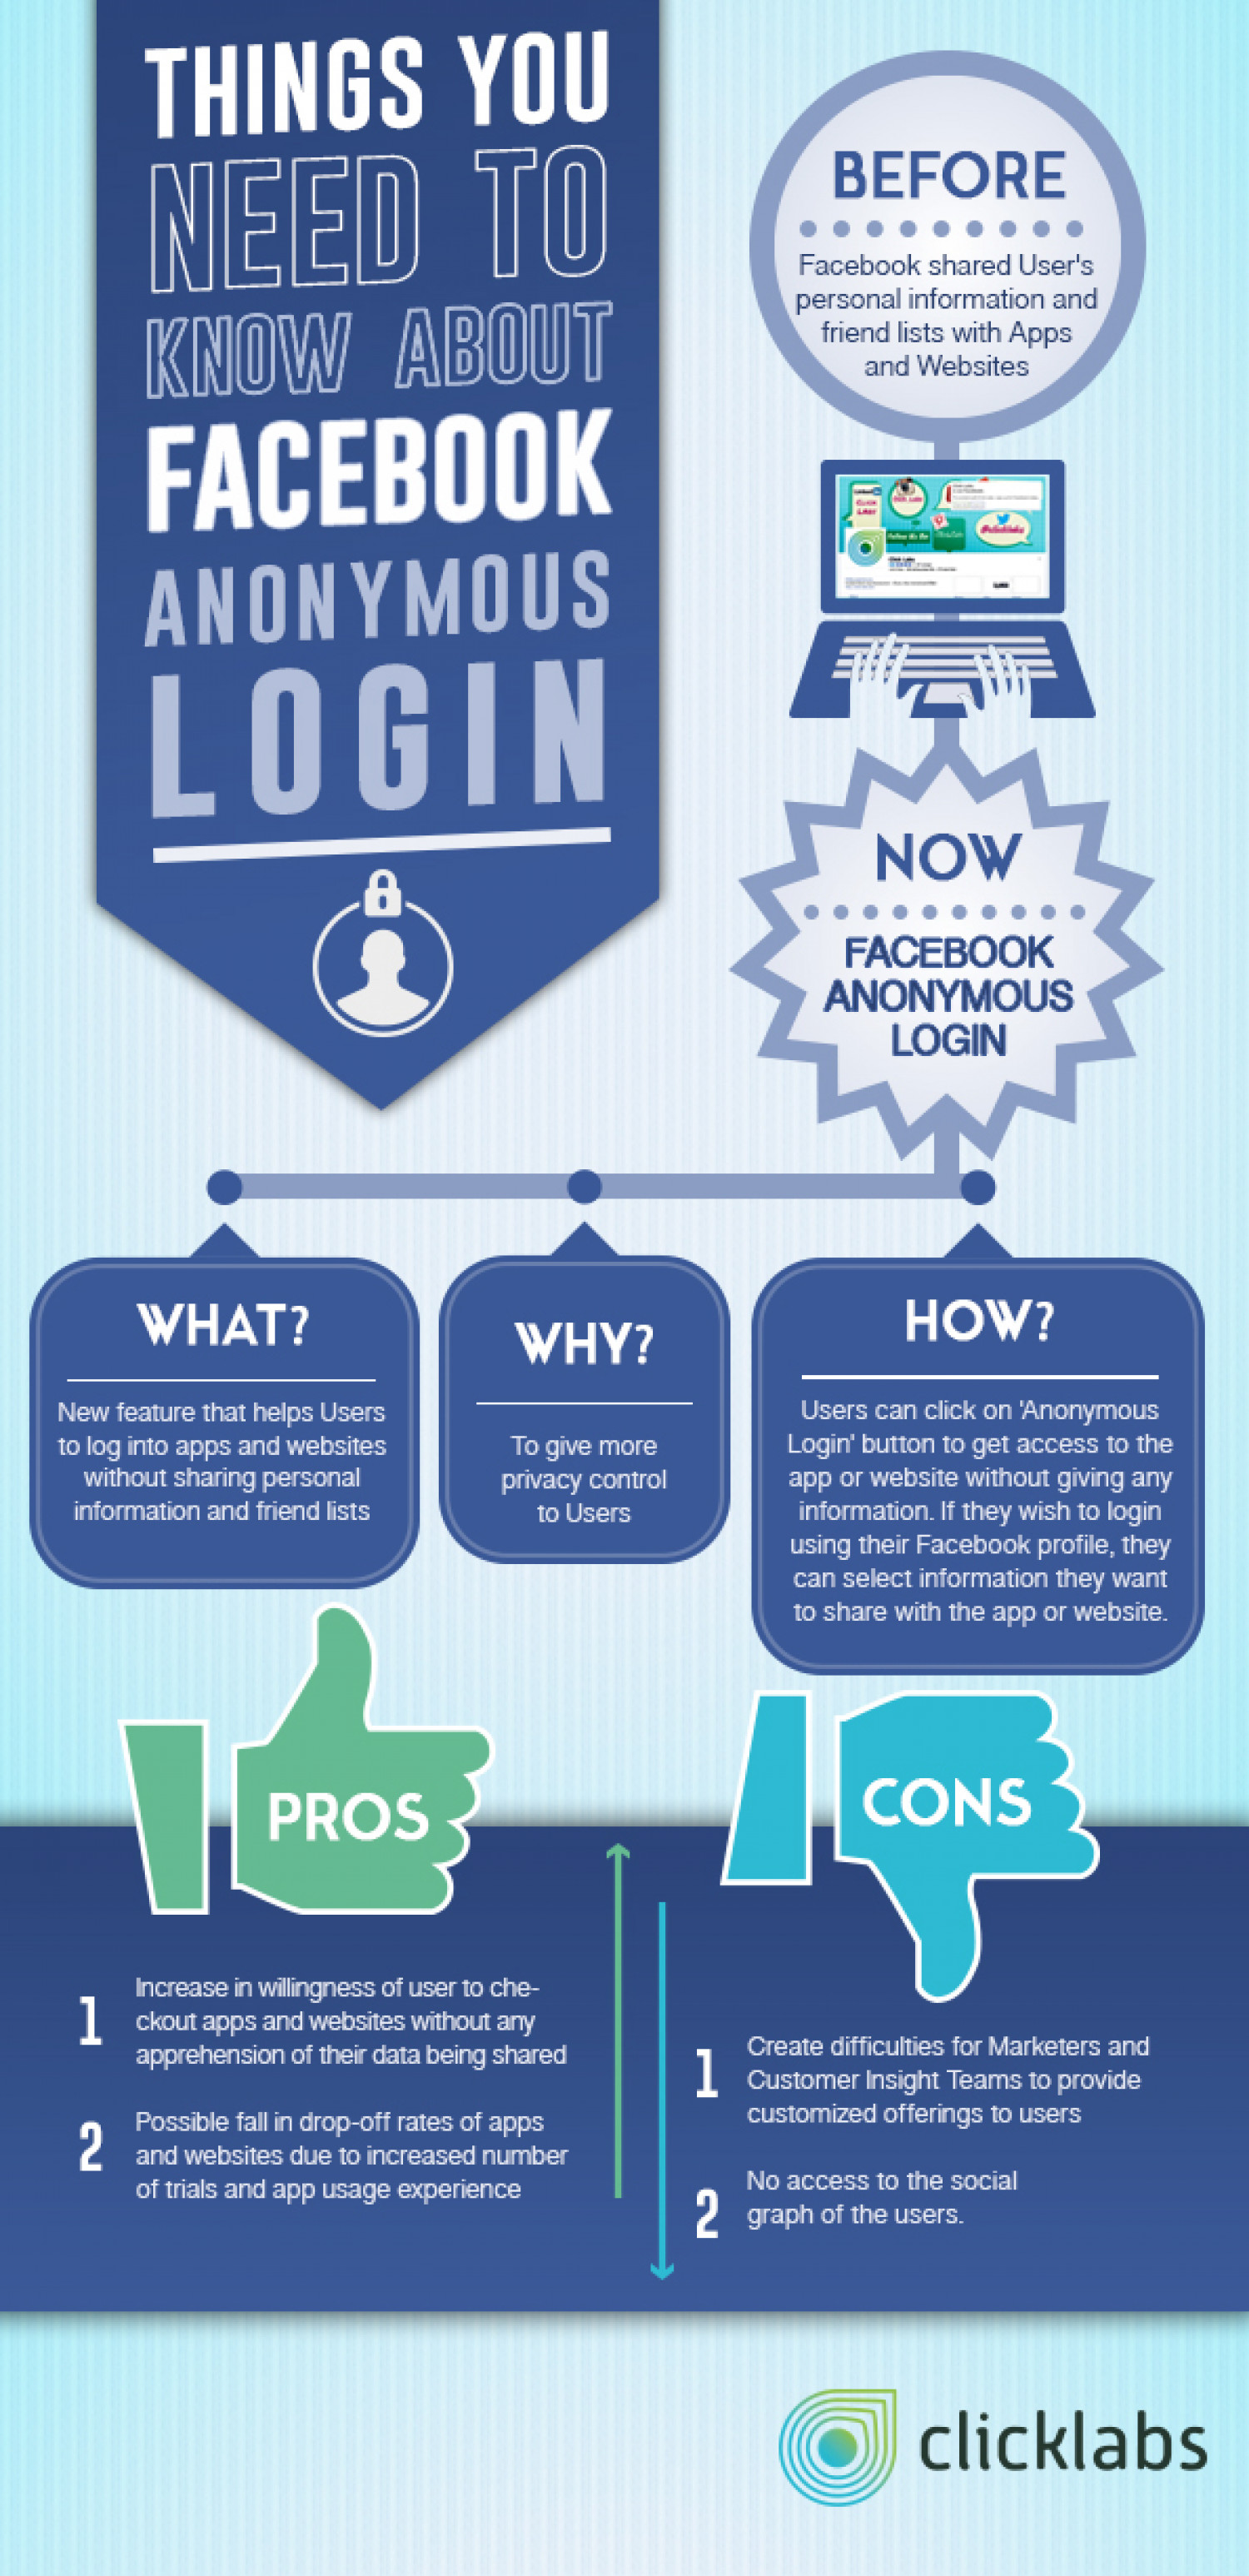 Things You Need to Know about Facebook Anonymous Login Infographic